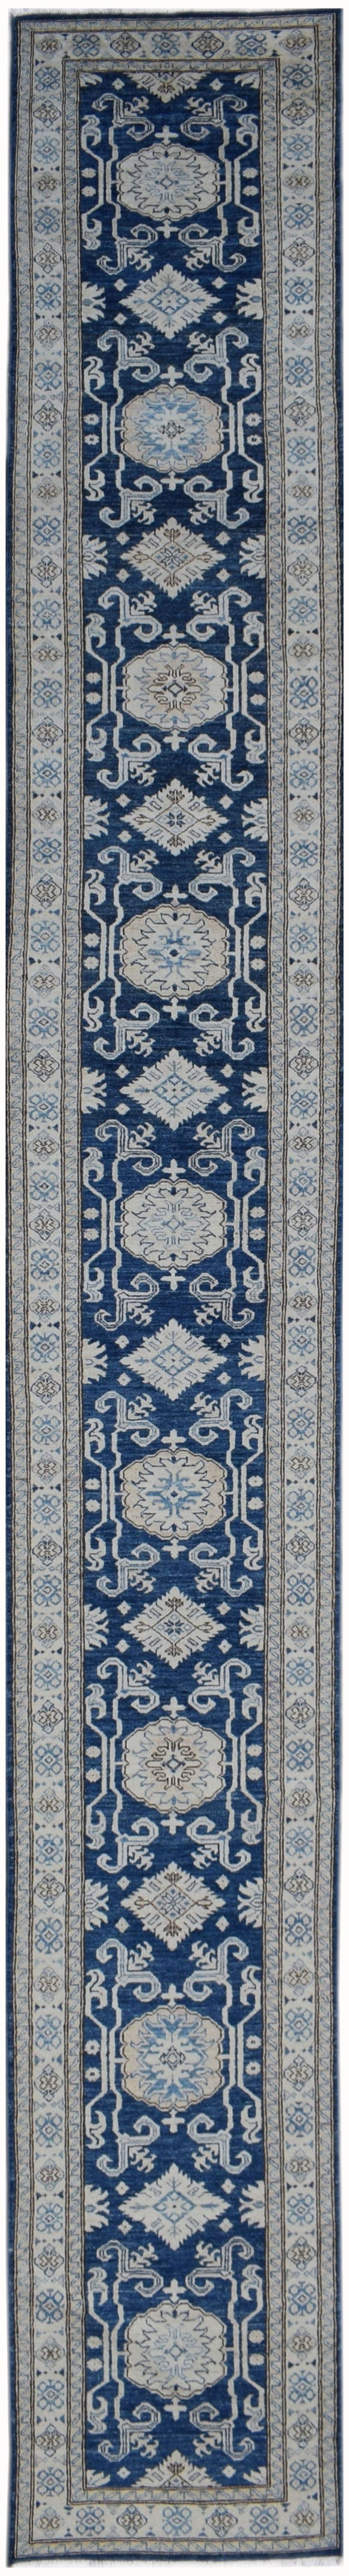 Handmade Super Sultan Collection Hallway Runner | 615 x 78 cm | 20'2